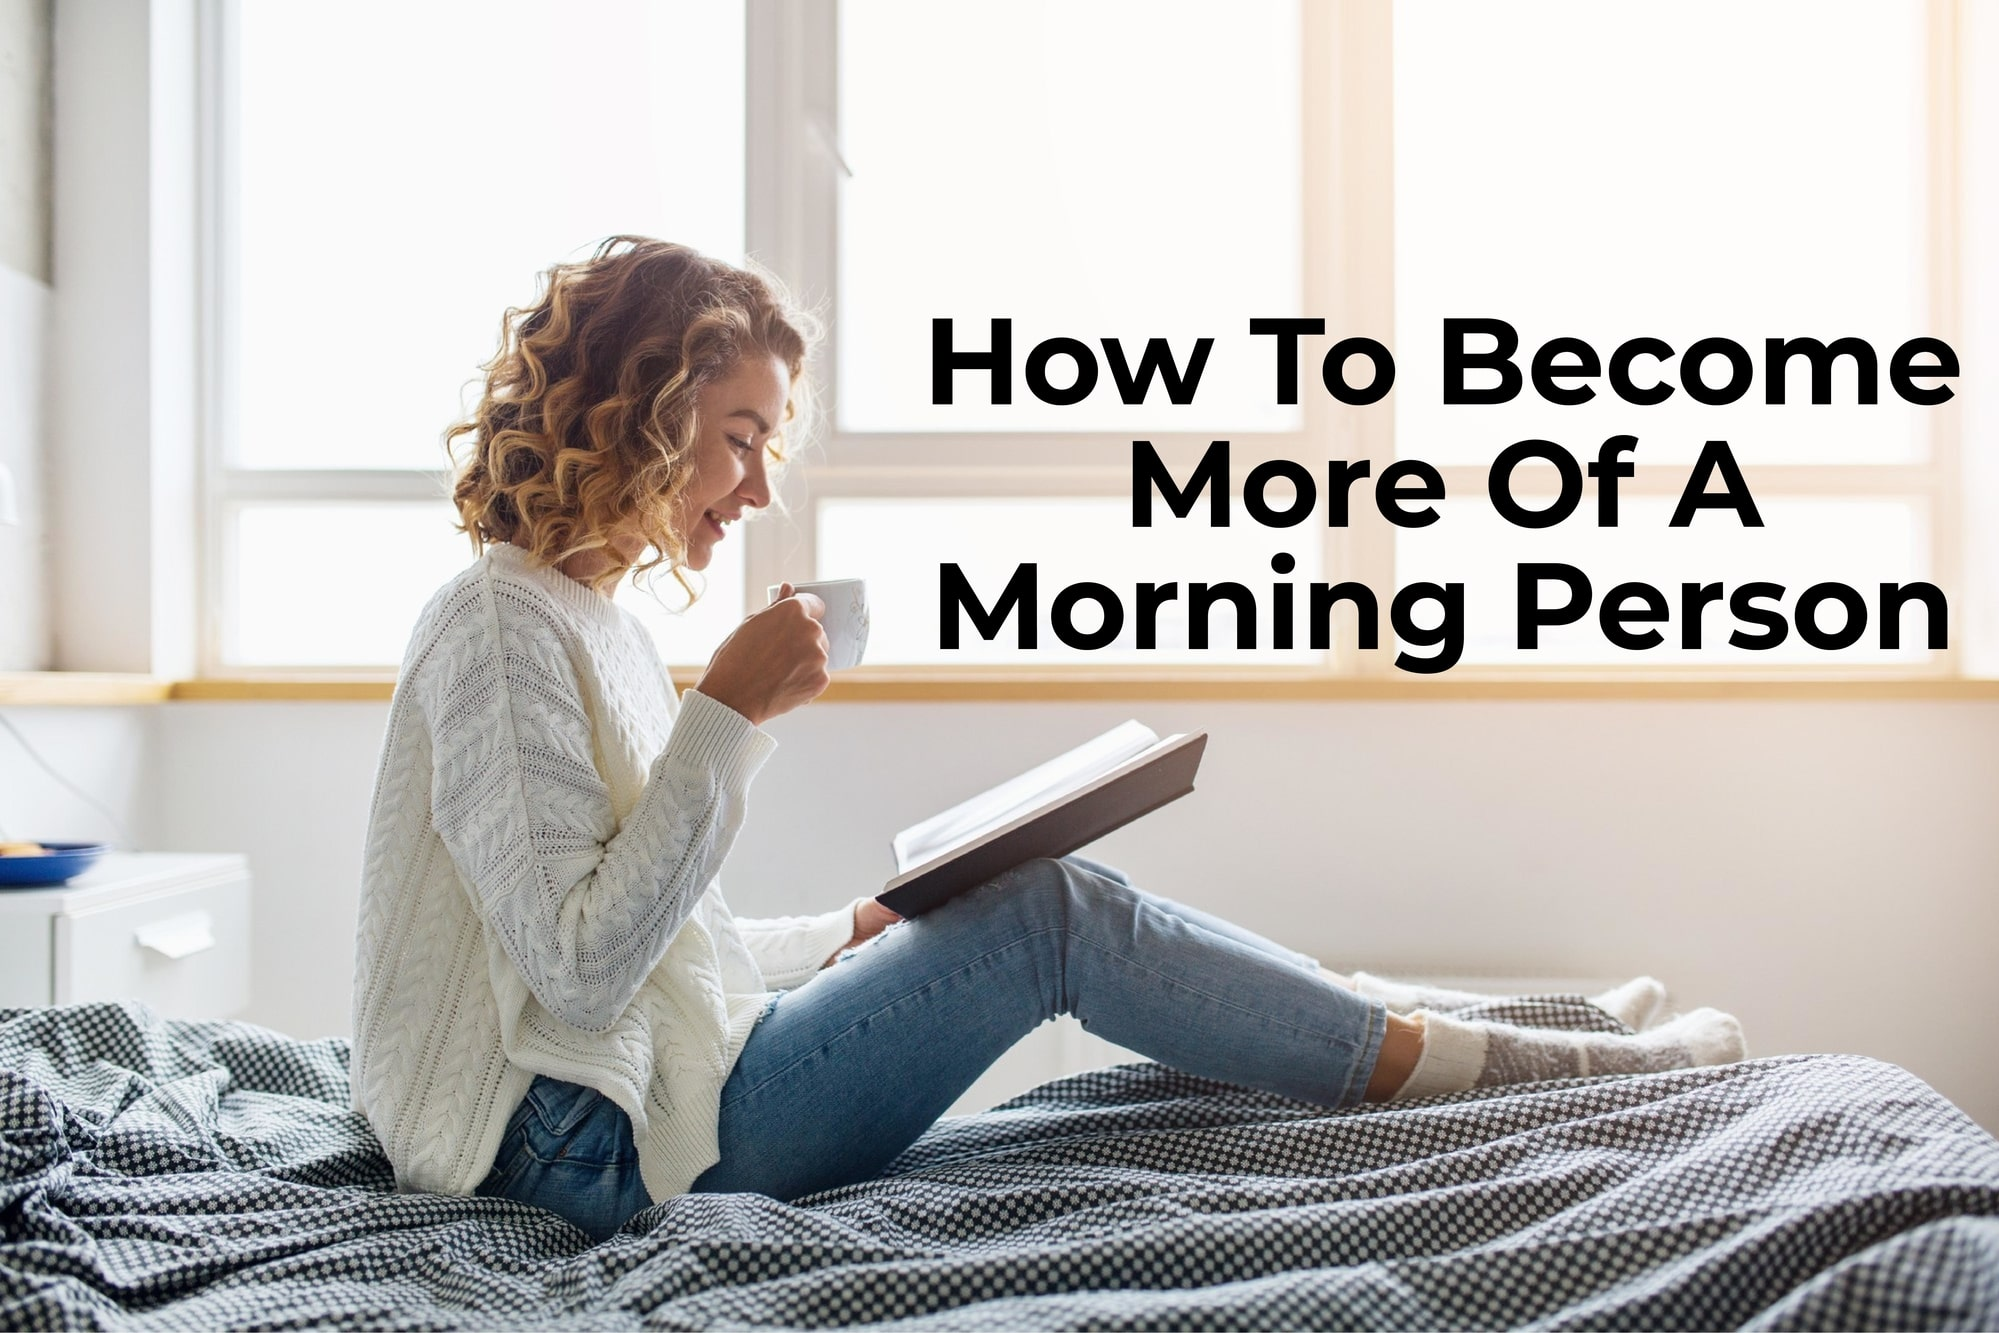 How To Become More Of A Morning Person